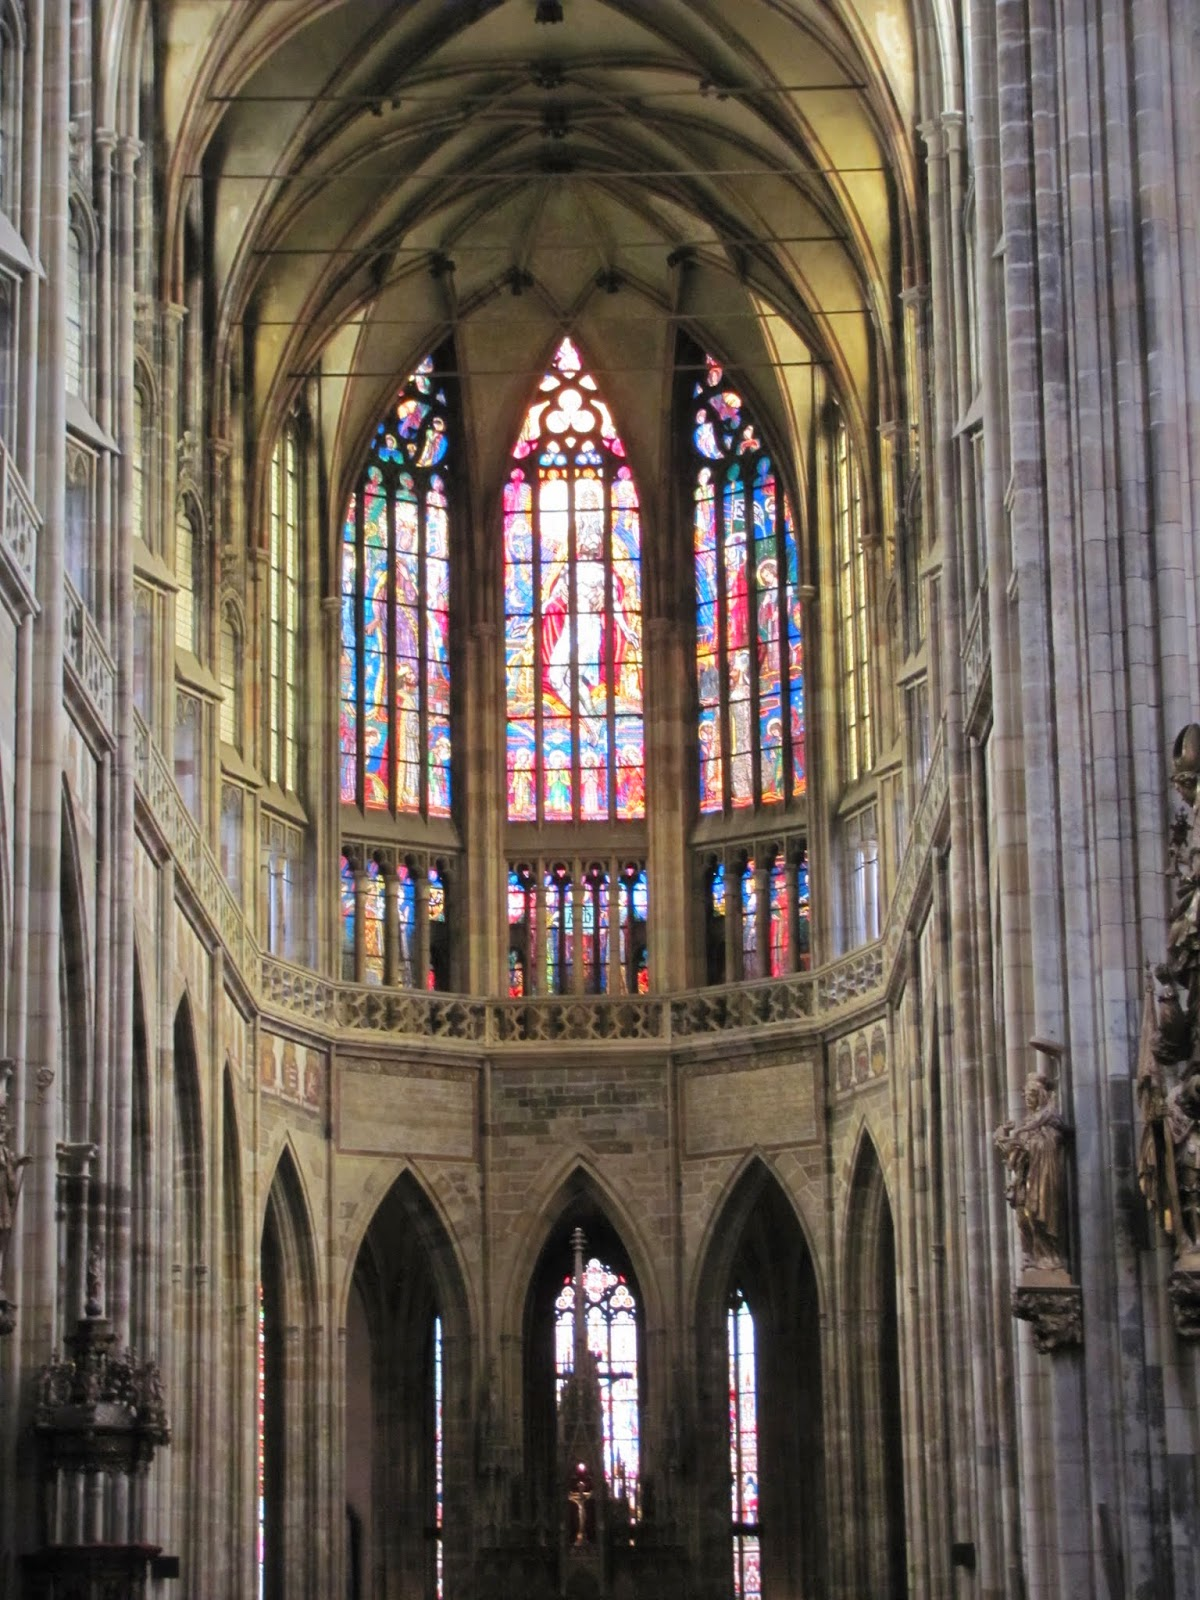 St. Vitus' Cathedral Interior